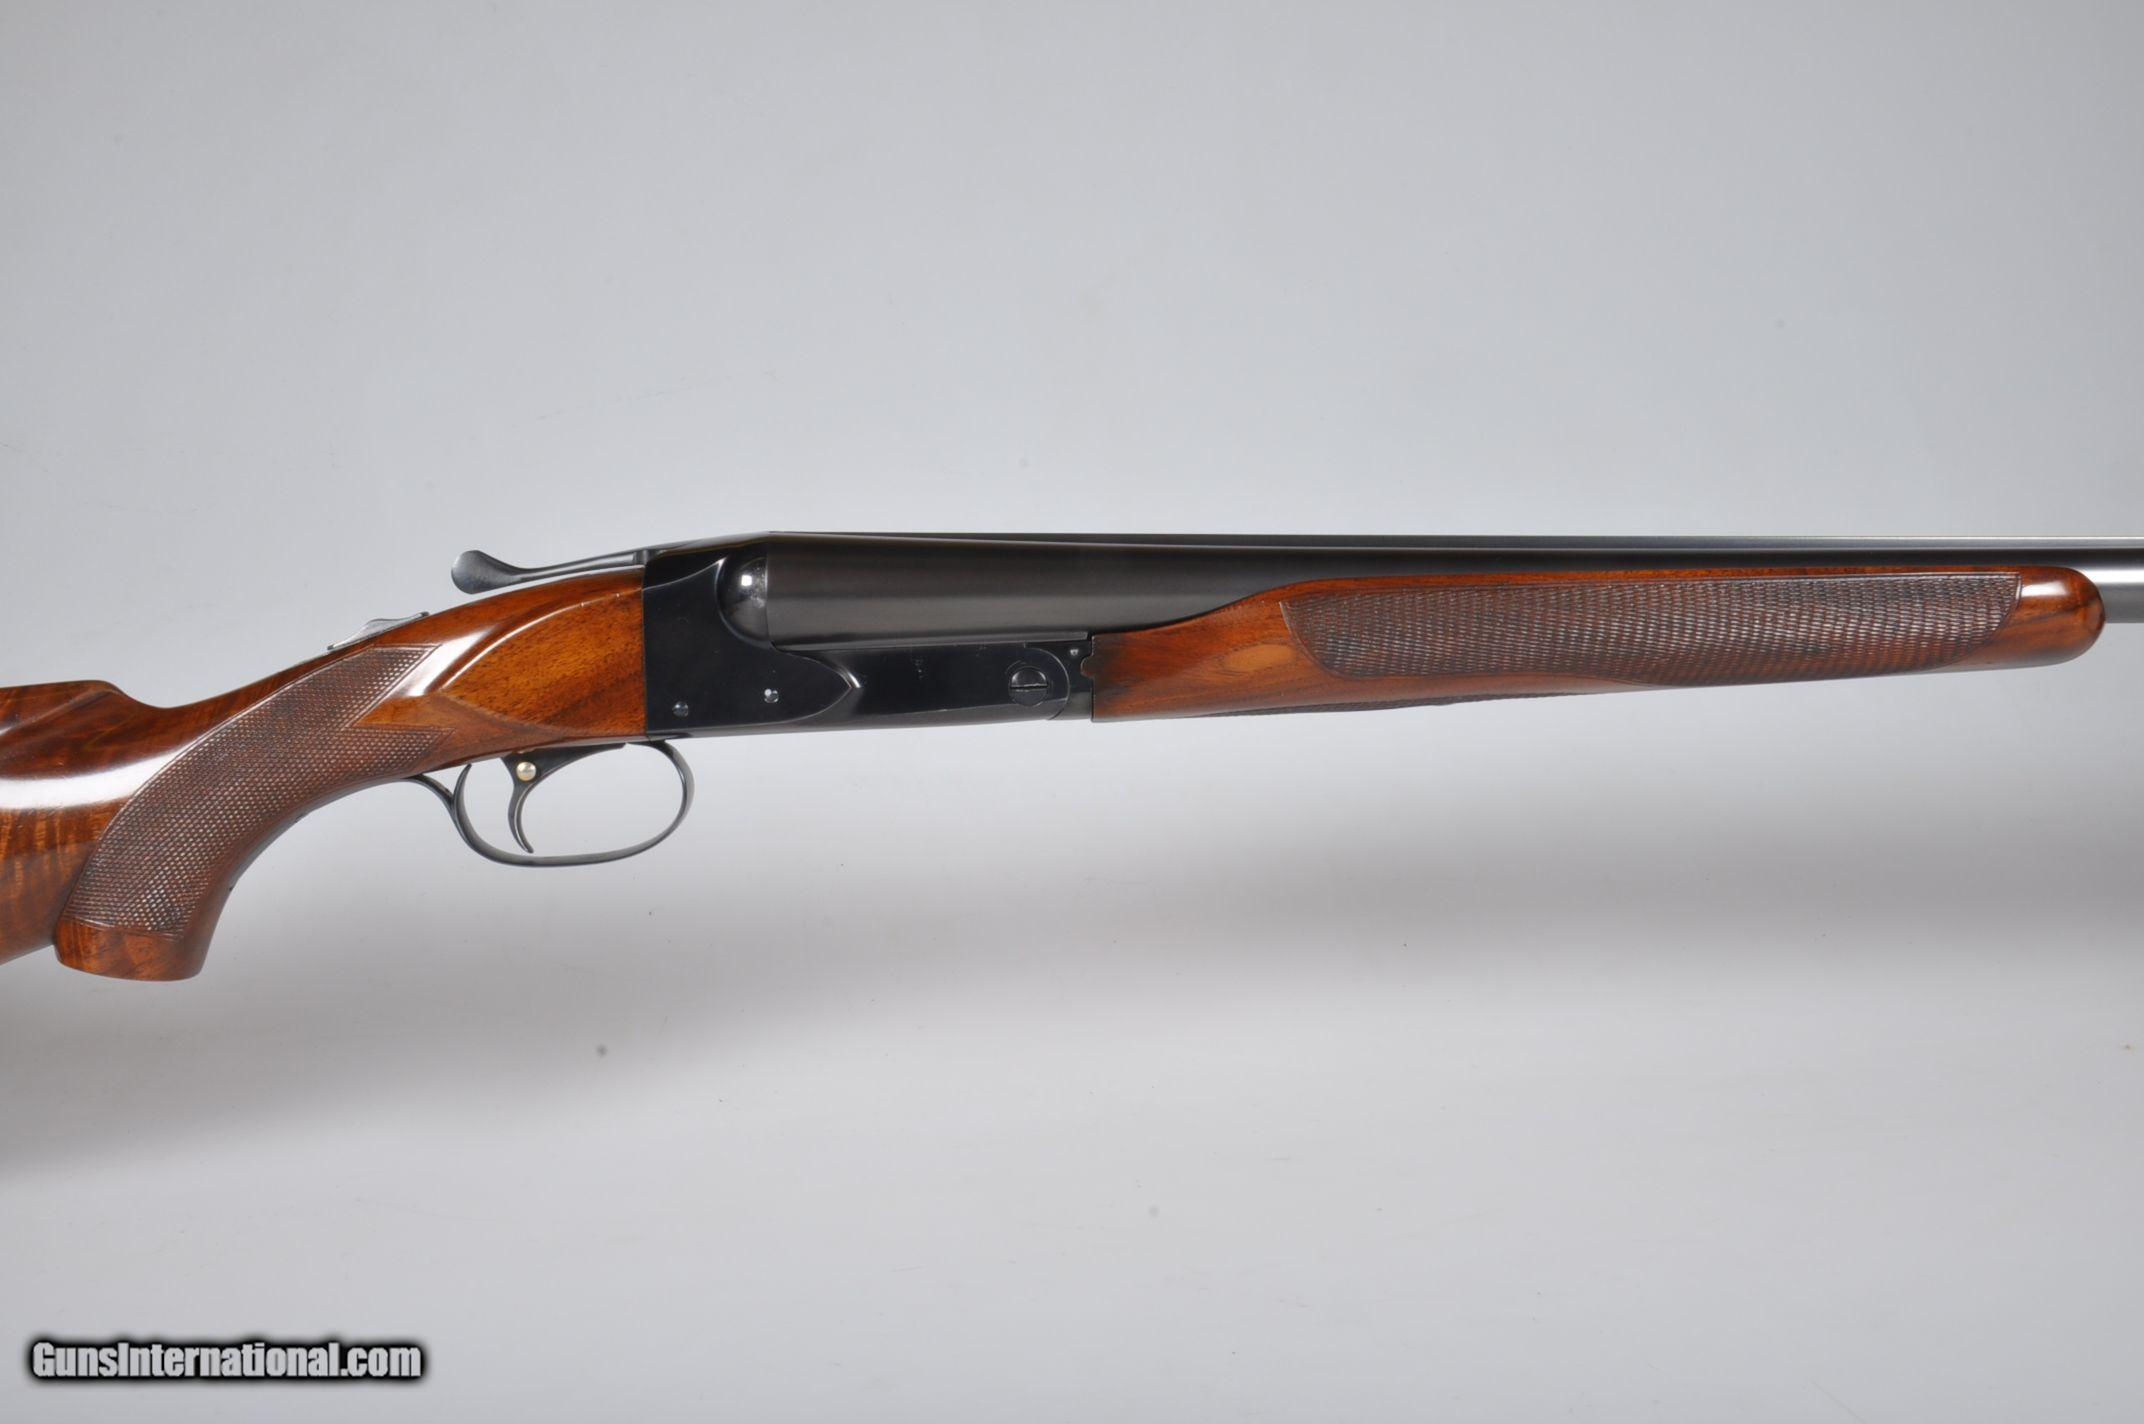 winchester model 21 duck 12 gauge 32 barrels pistol grip stock